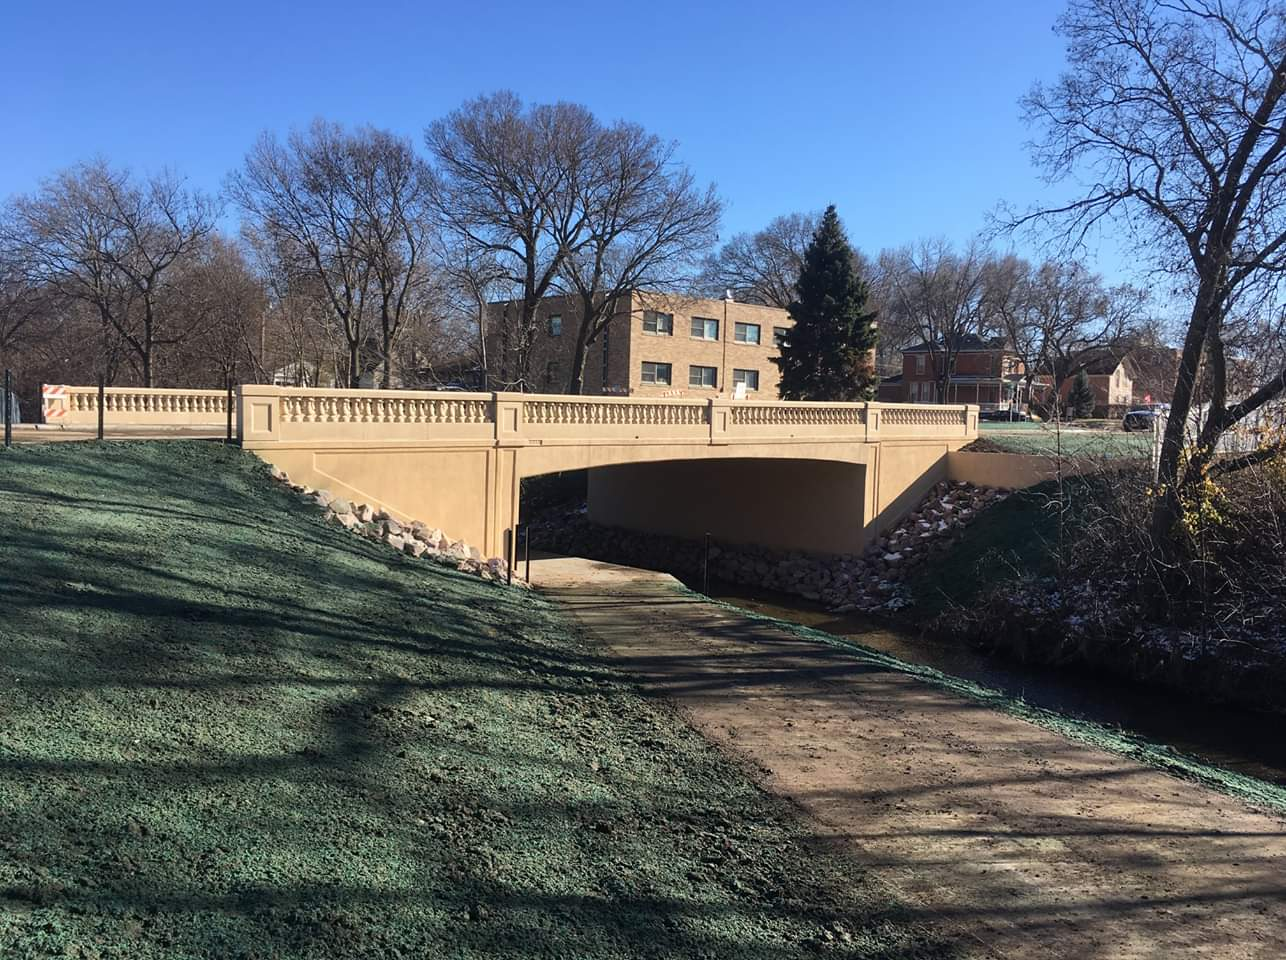 Pine Street Bridge Project Completed